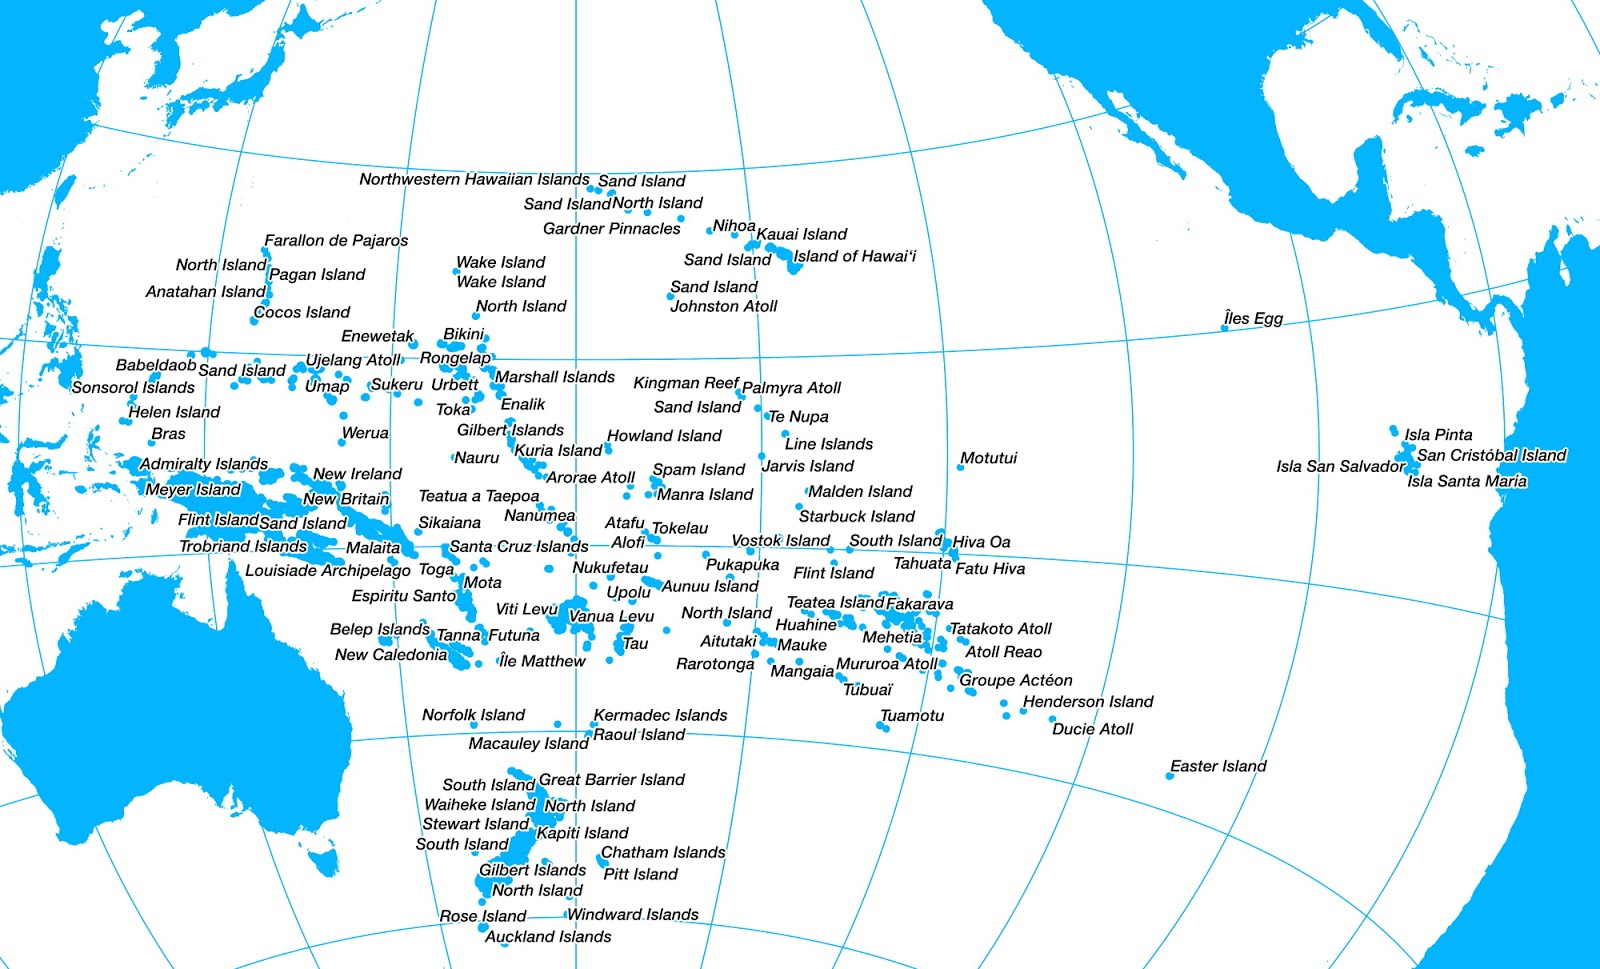 Oceania, the truncated continent